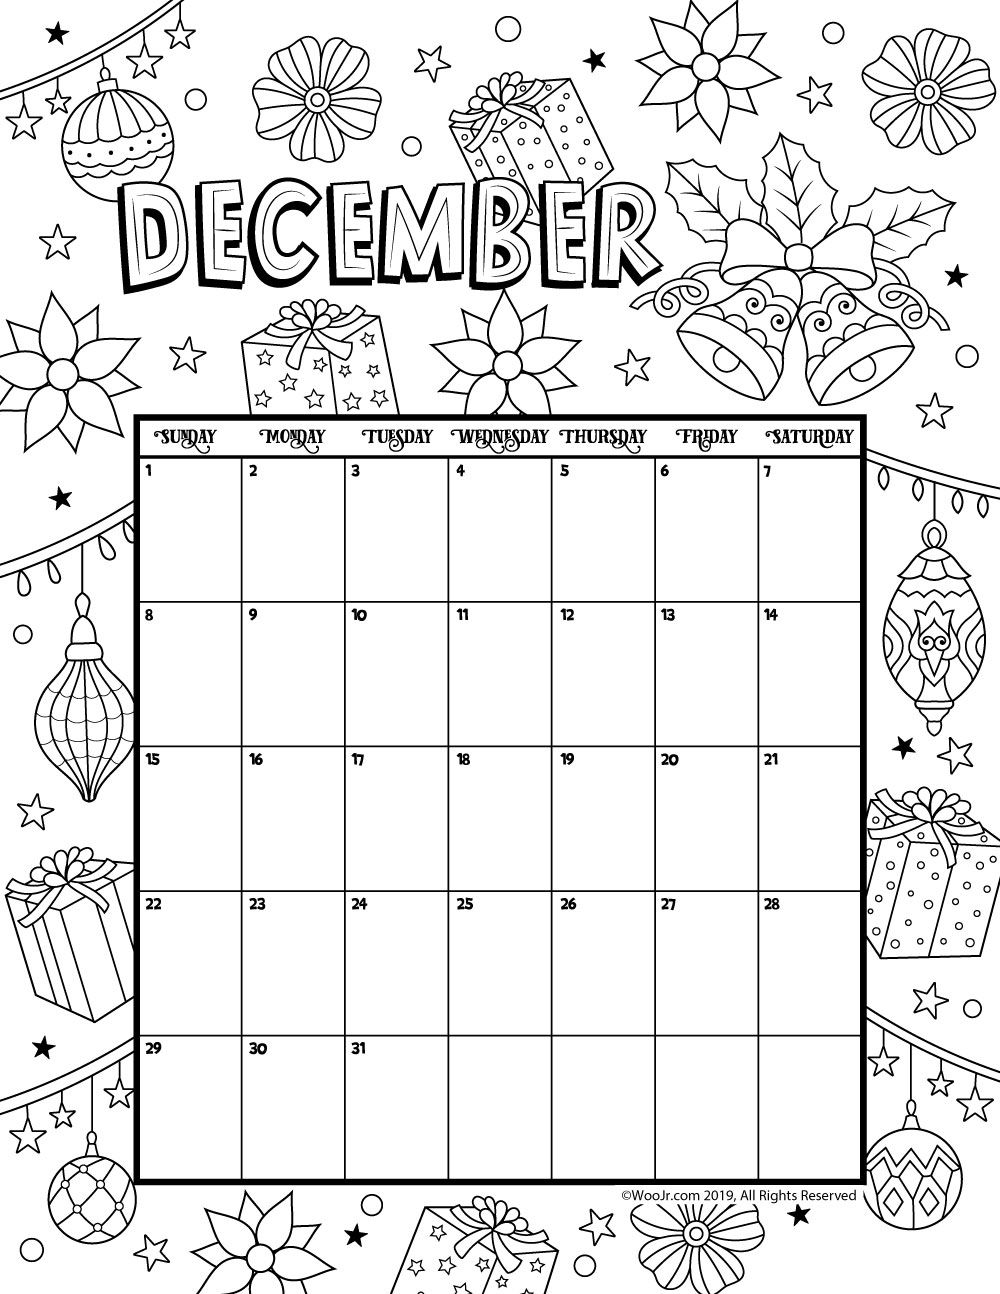 2019 Coloring Calendar With December Calender Pinterest